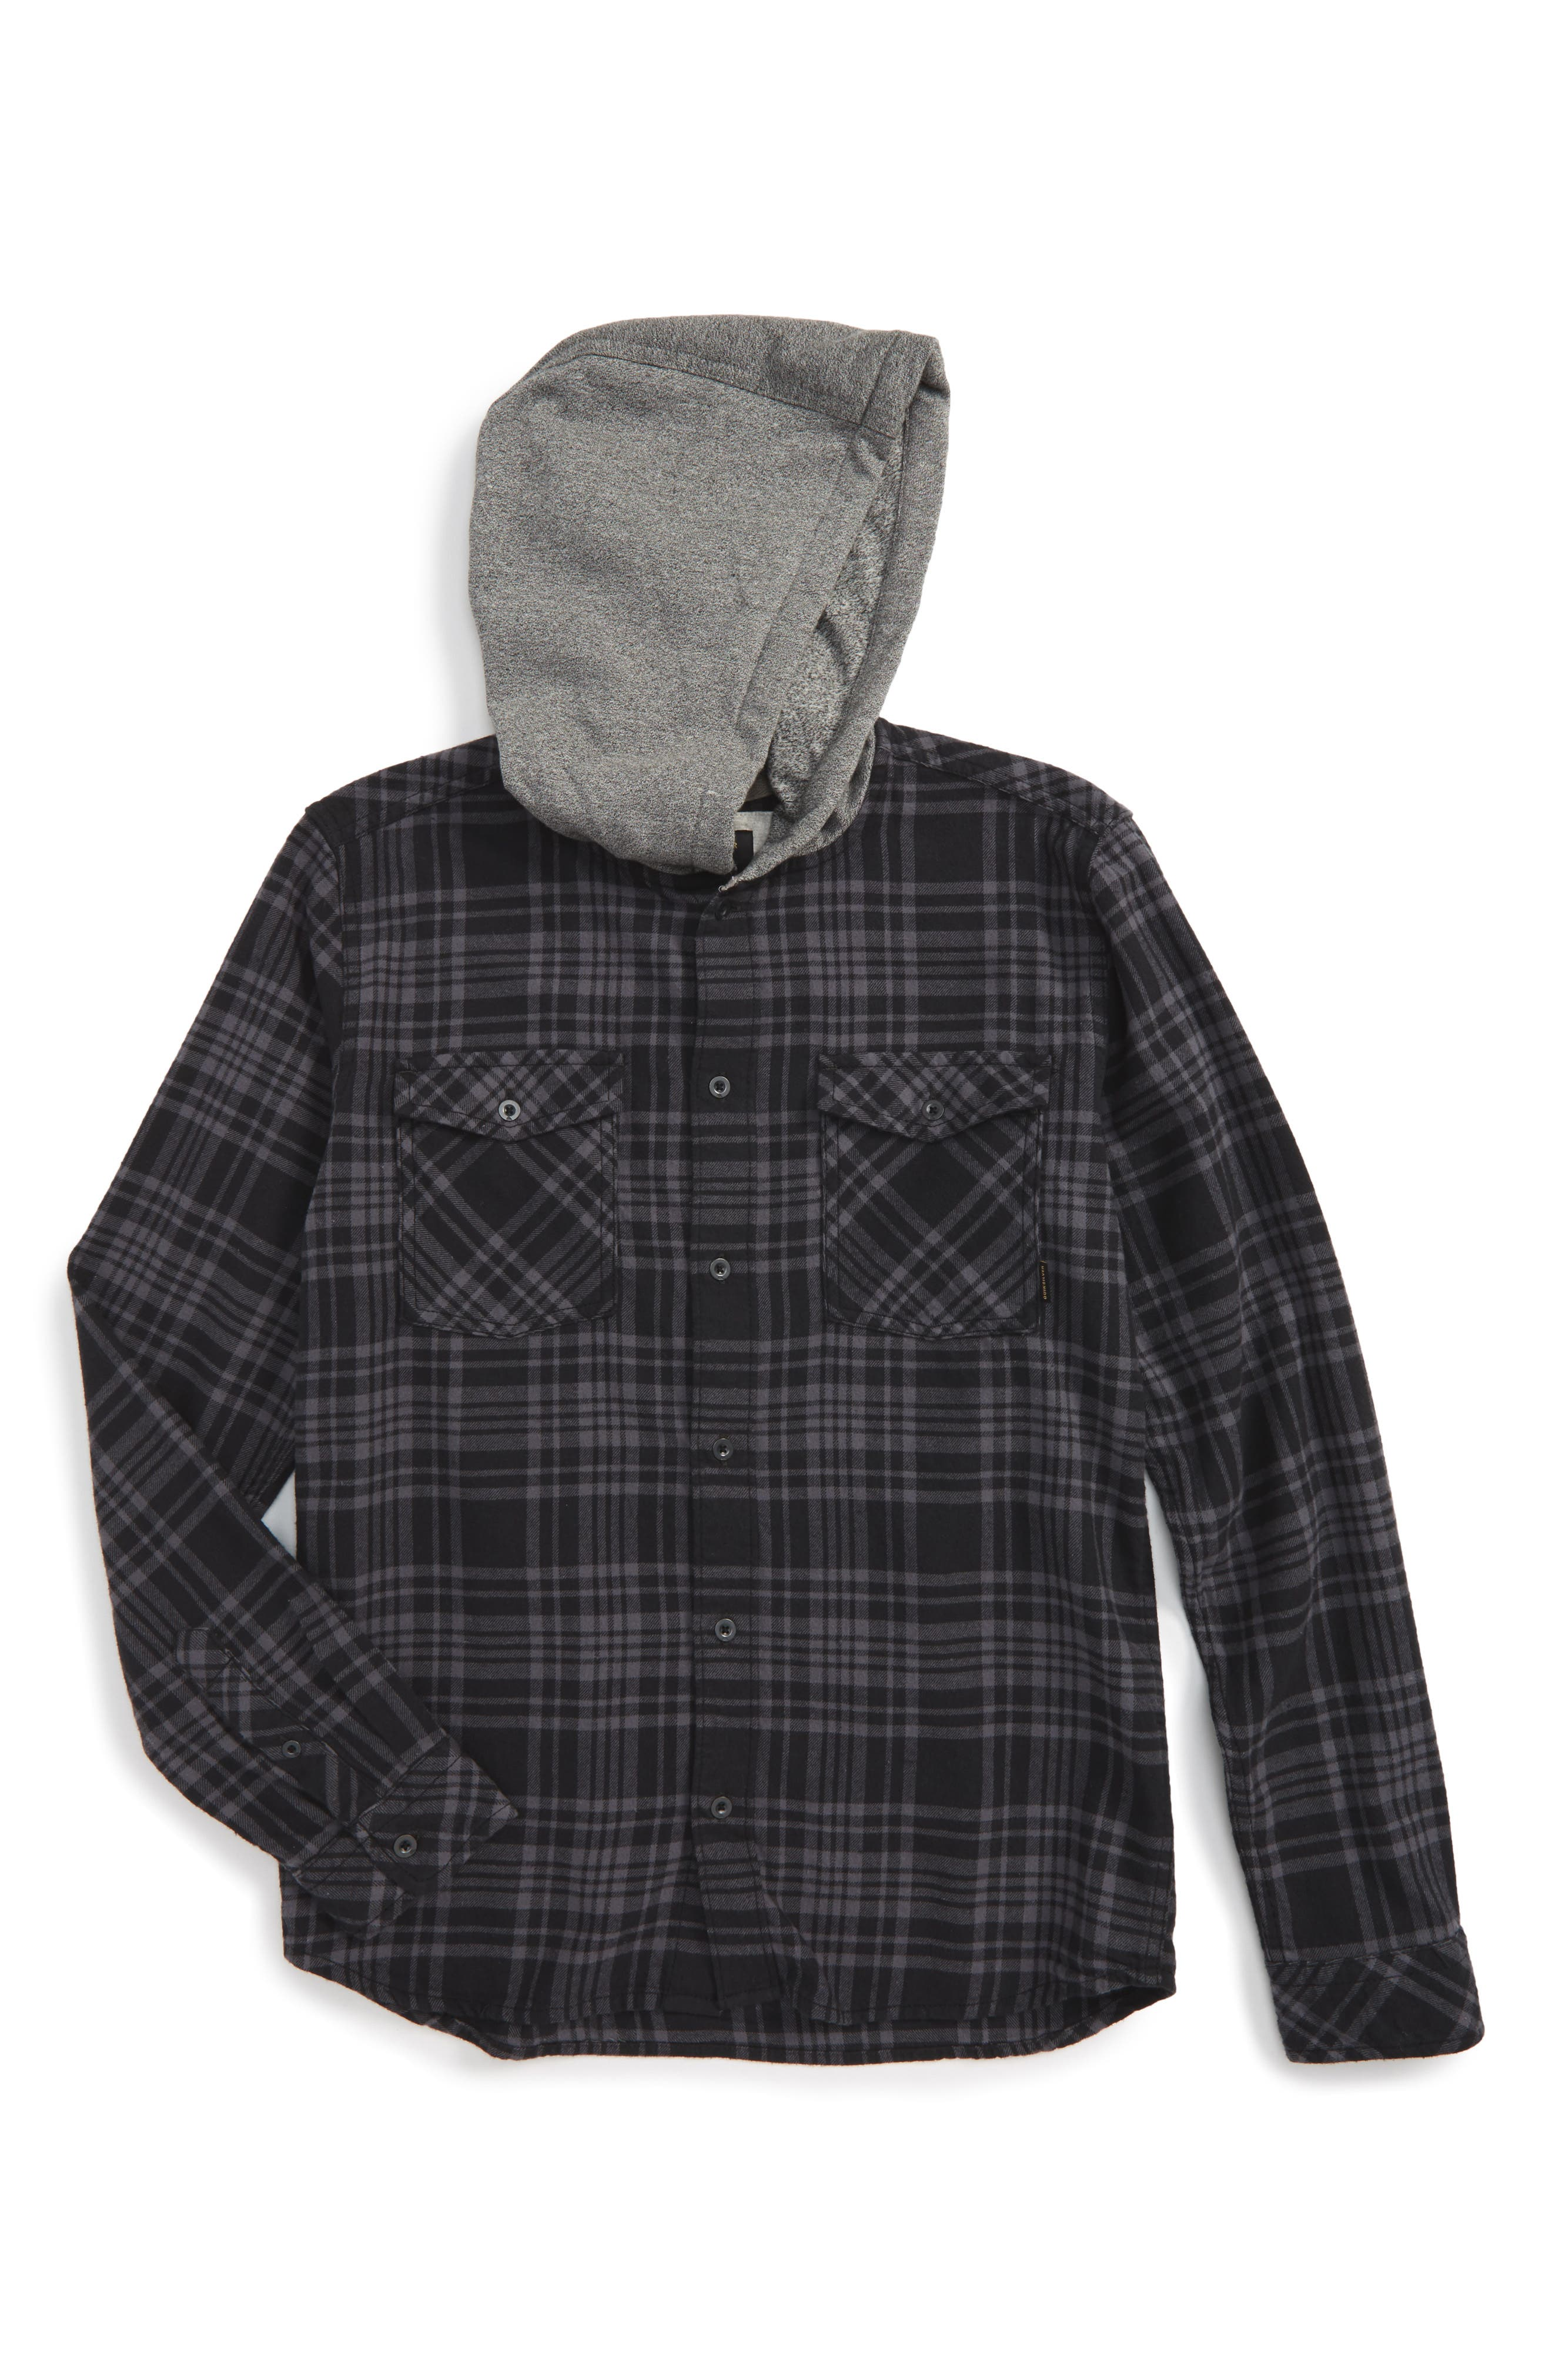 Quiksilver Hooded Plaid Woven Shirt (Toddler Boys, Little Boys & Big Boys)